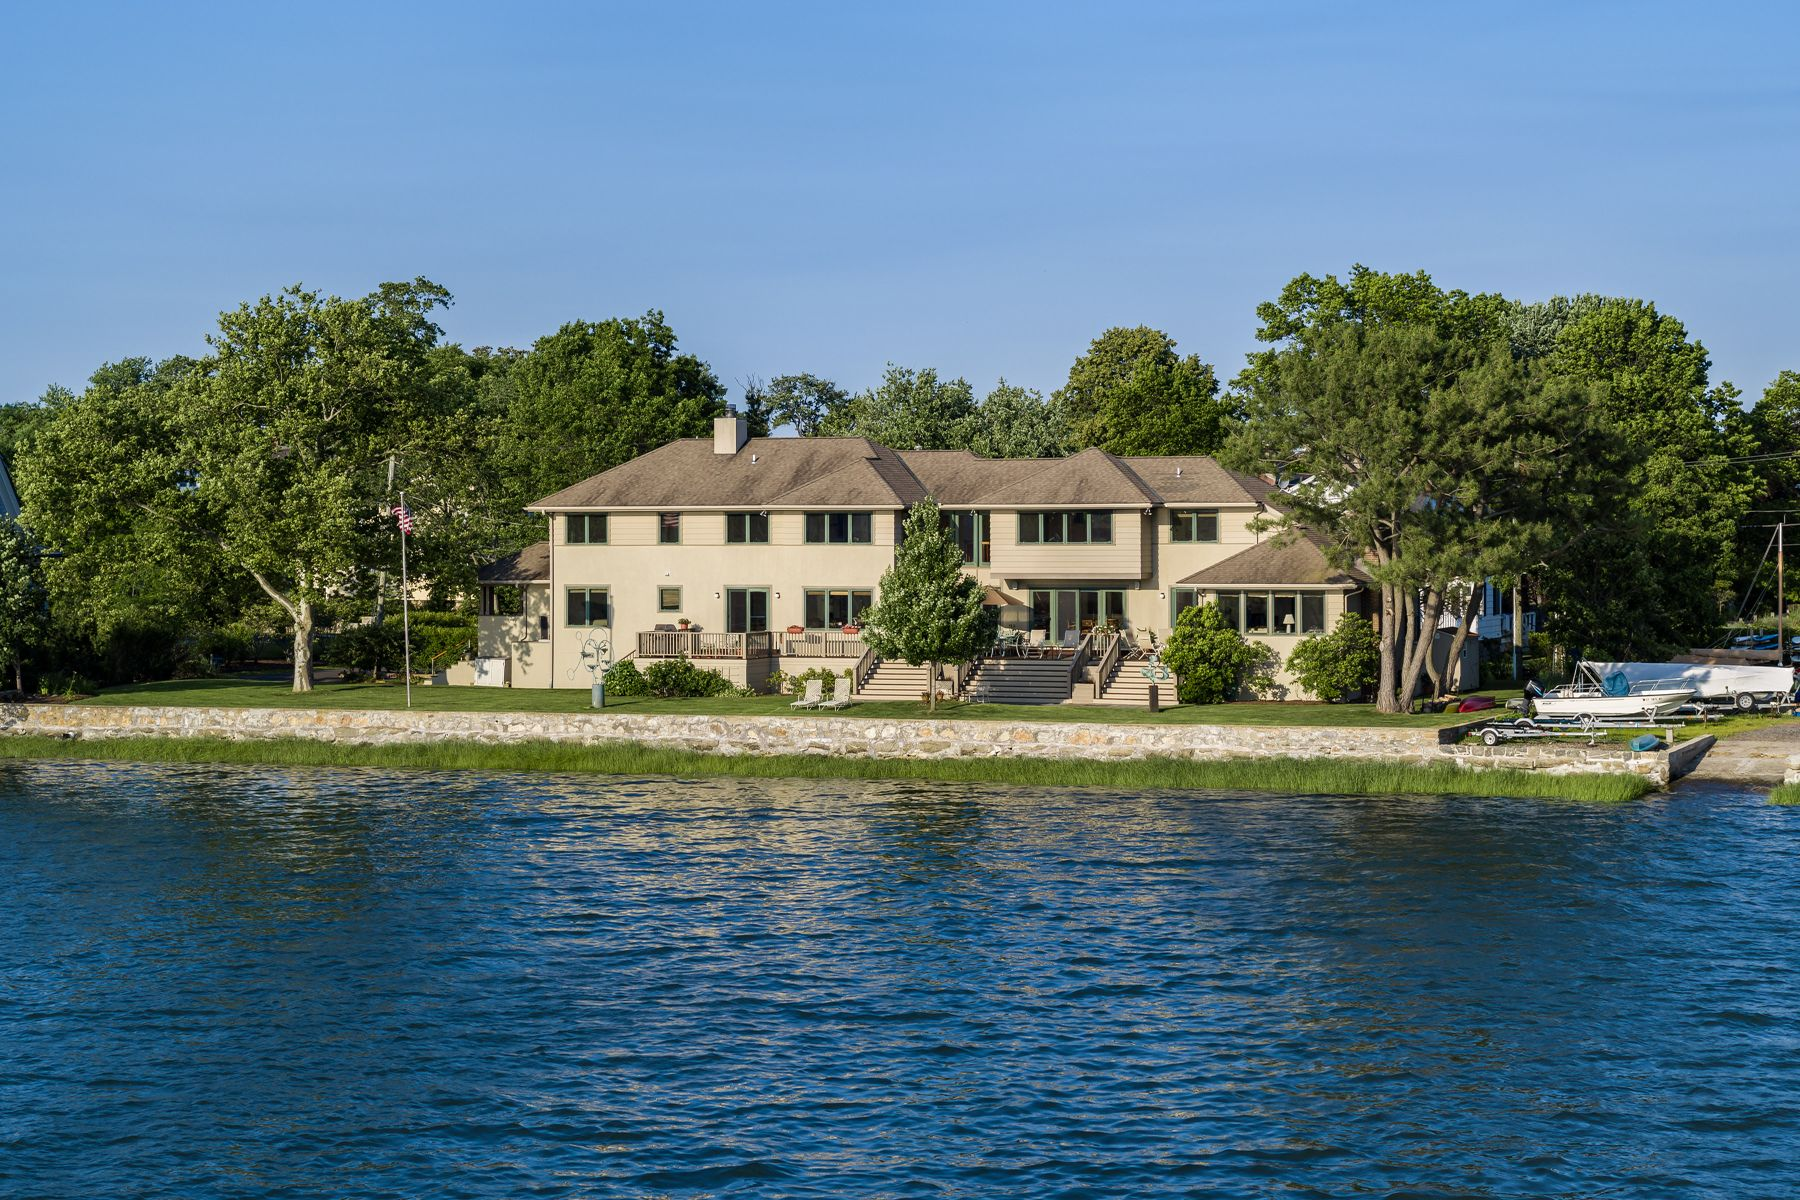 Single Family Homes for Sale at 10 South Crossway Old Greenwich, Connecticut 06870 United States